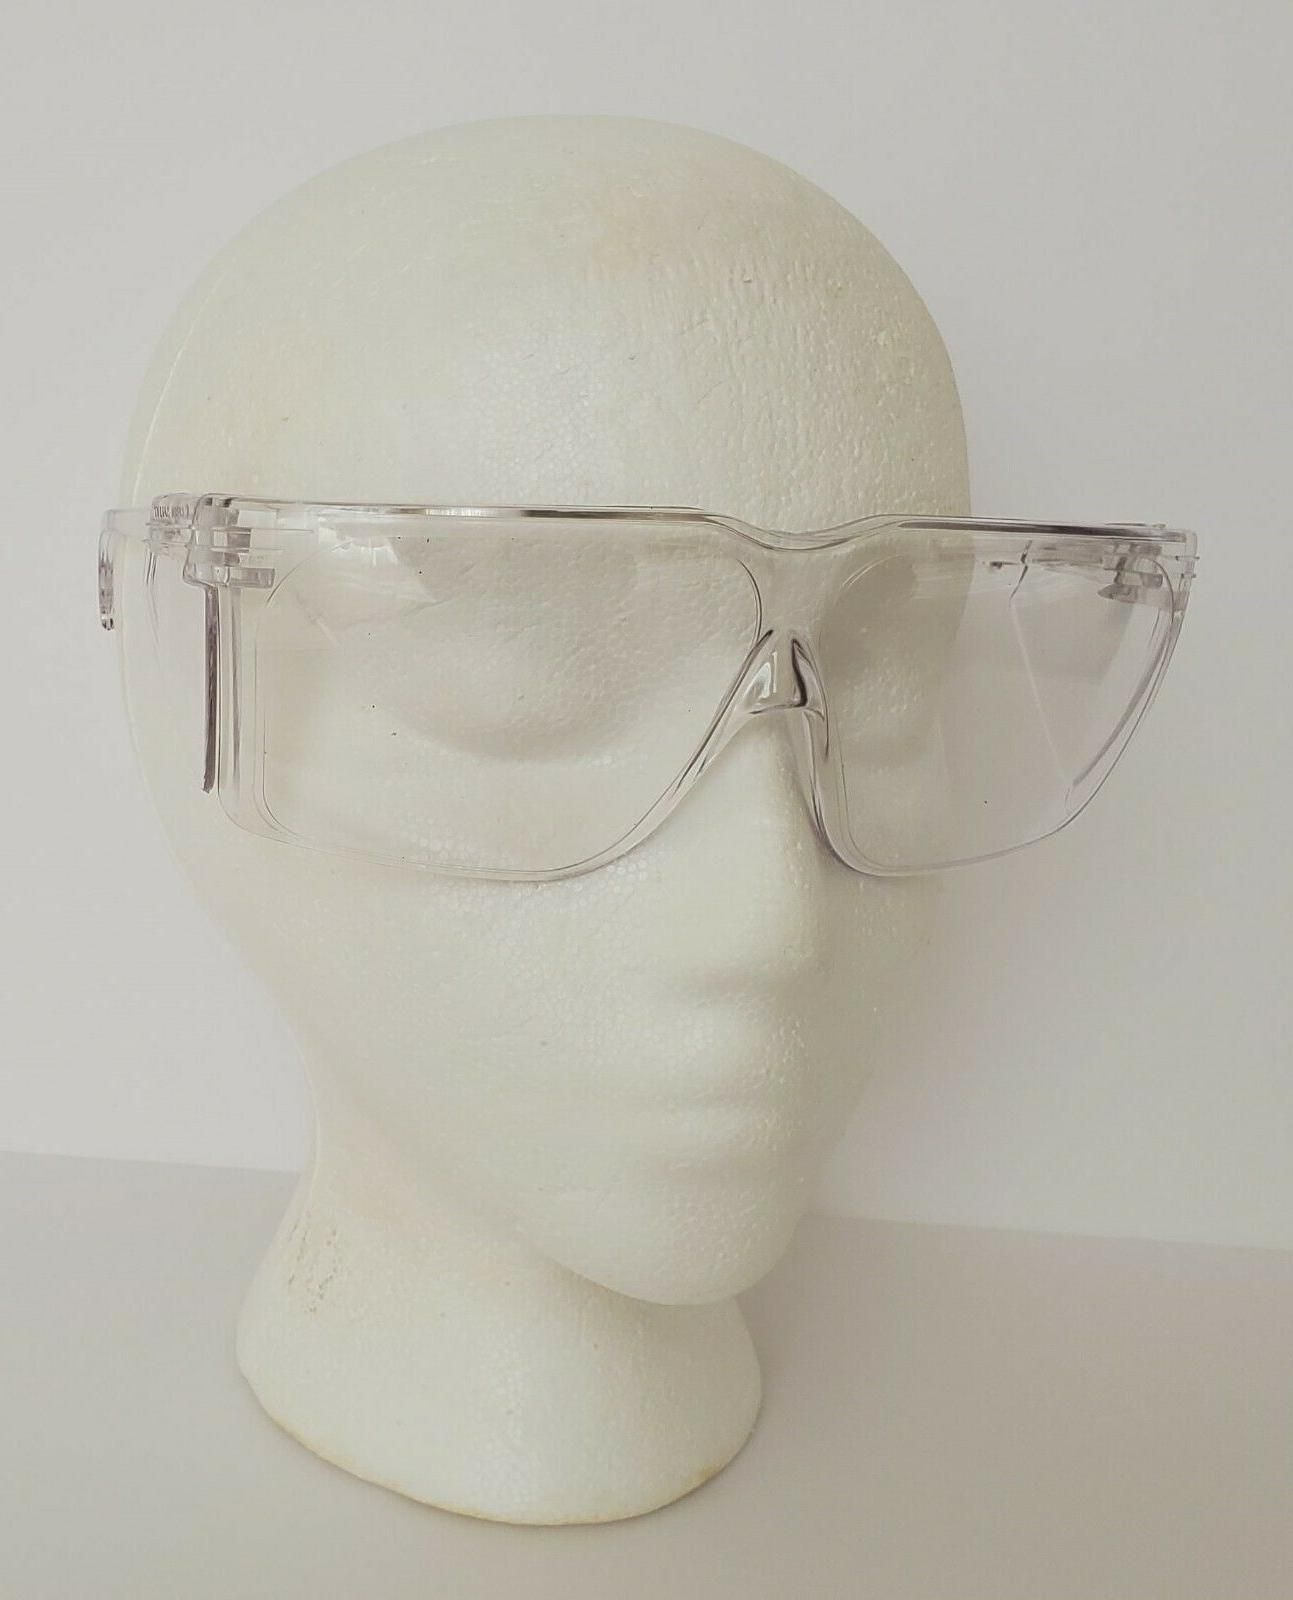 tour guard iii clear safety glasses 958